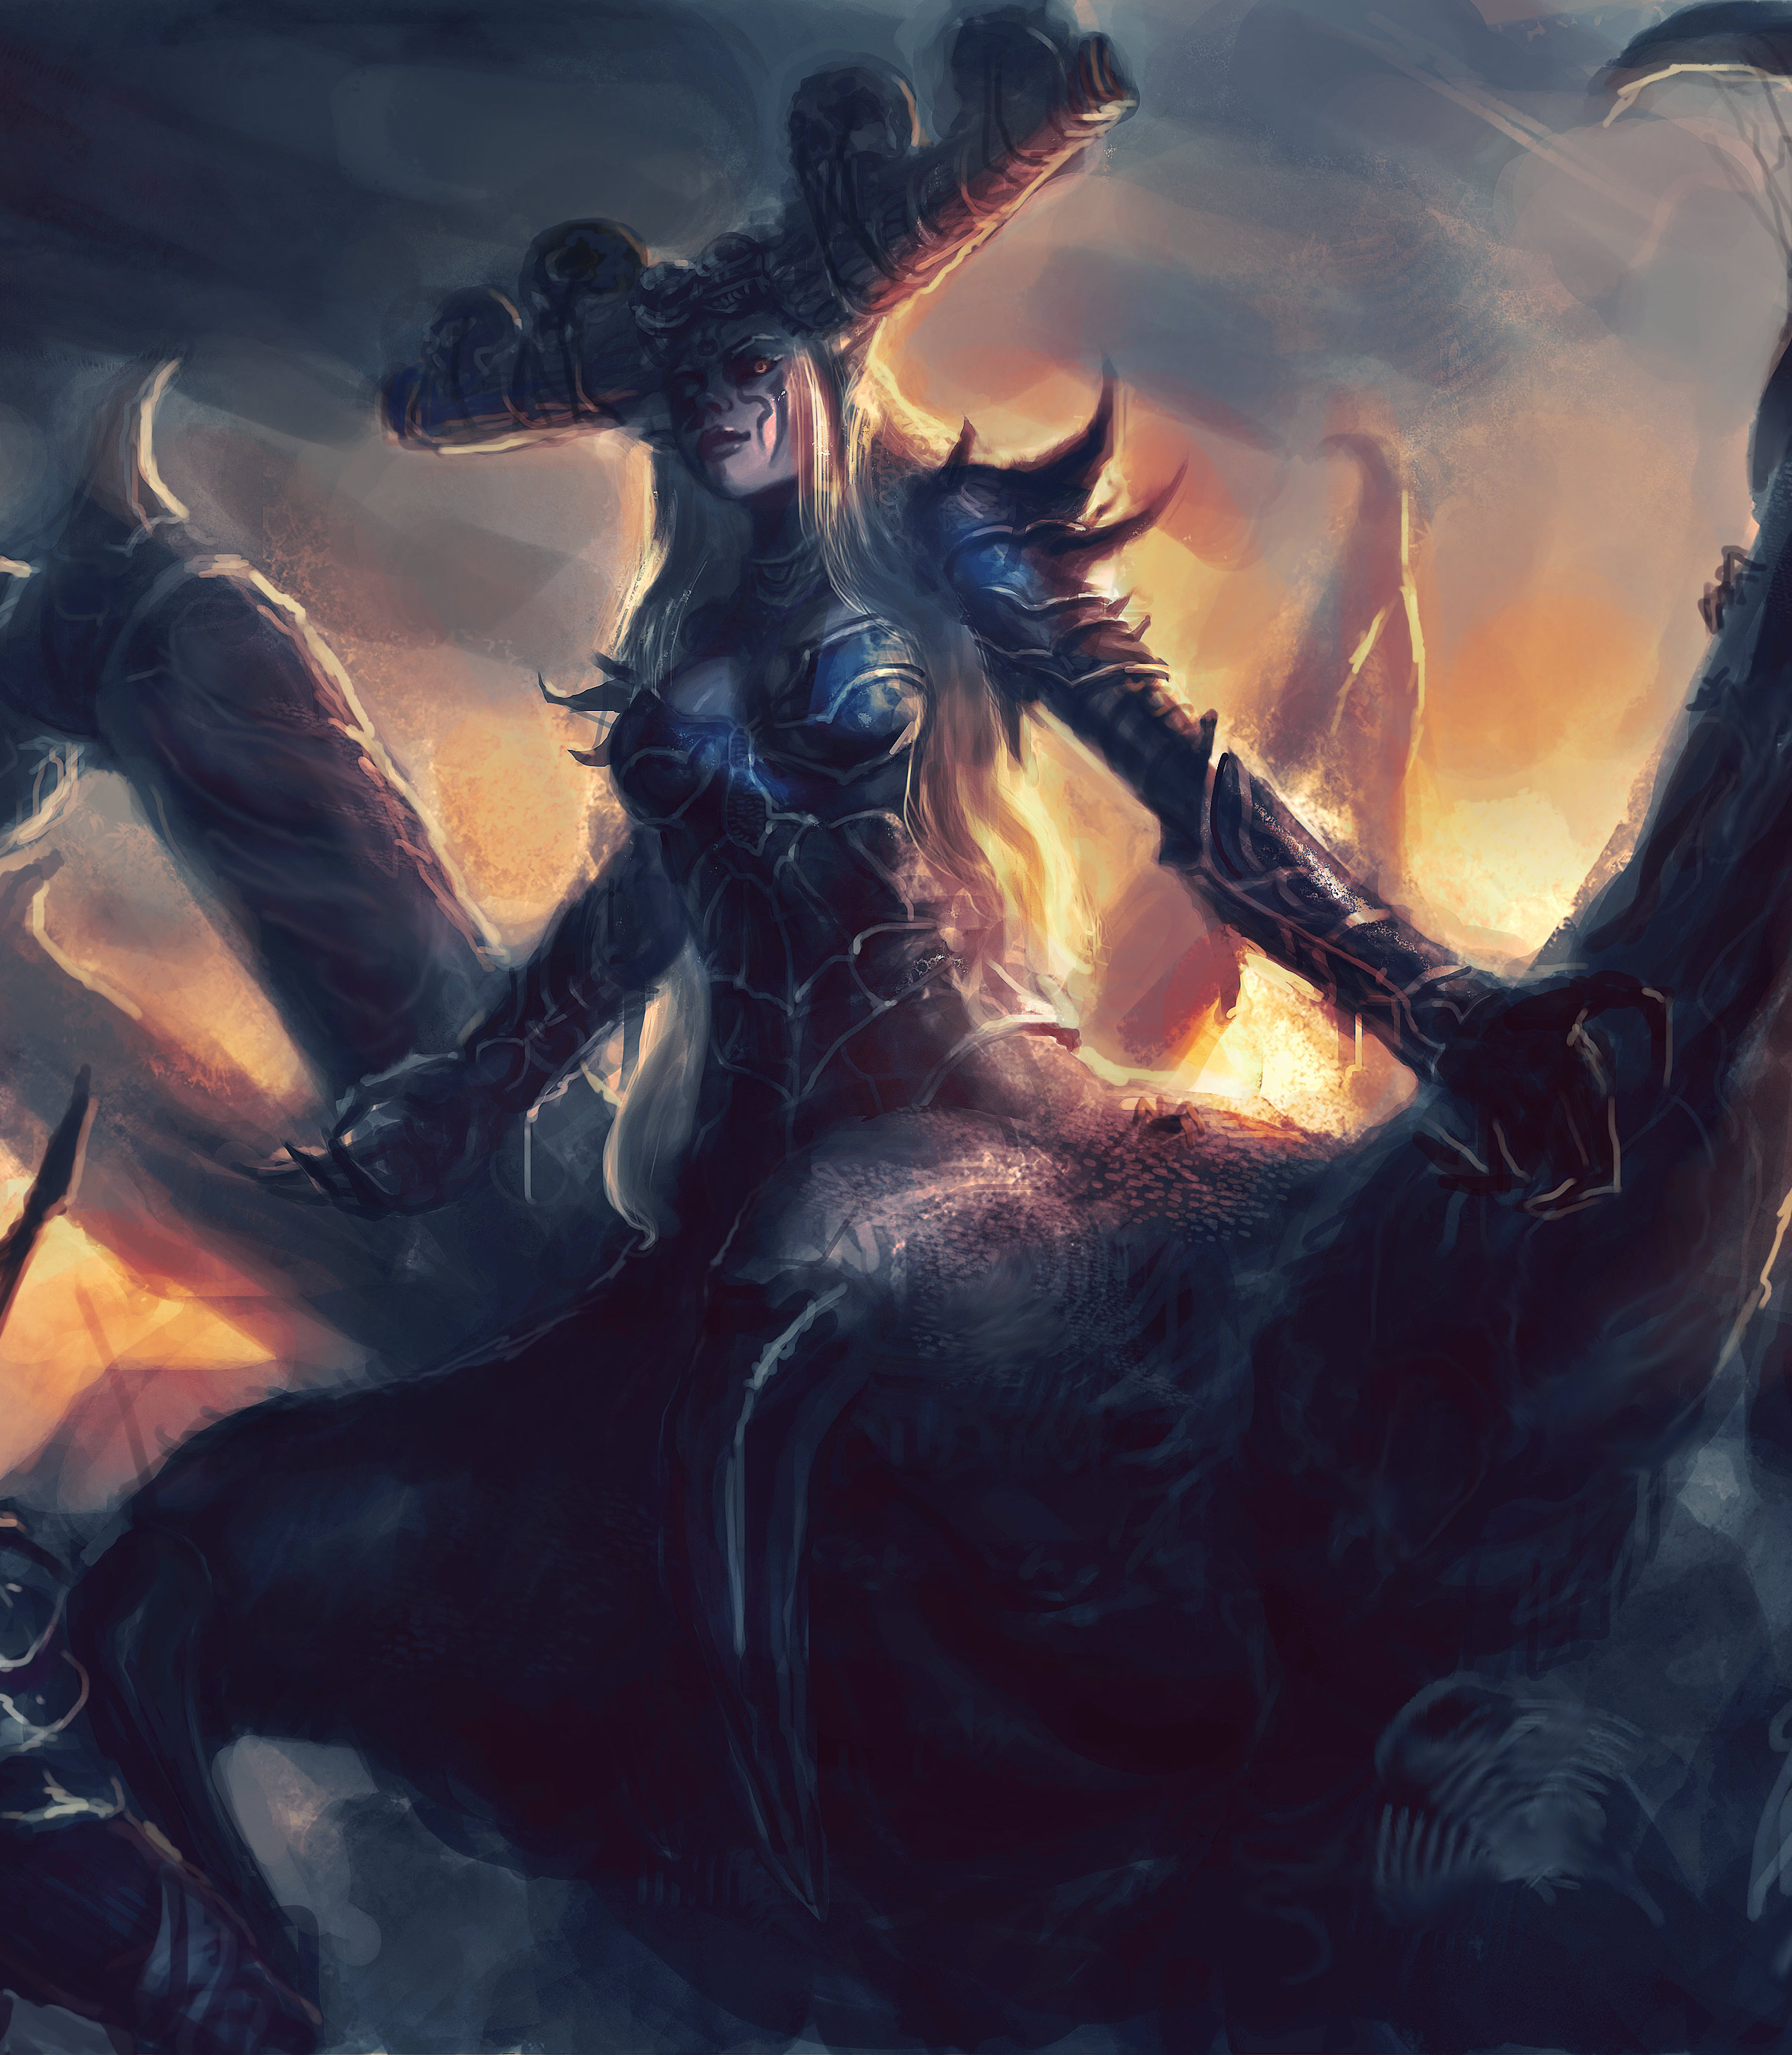 Related Keywords & Suggestions For Lolth